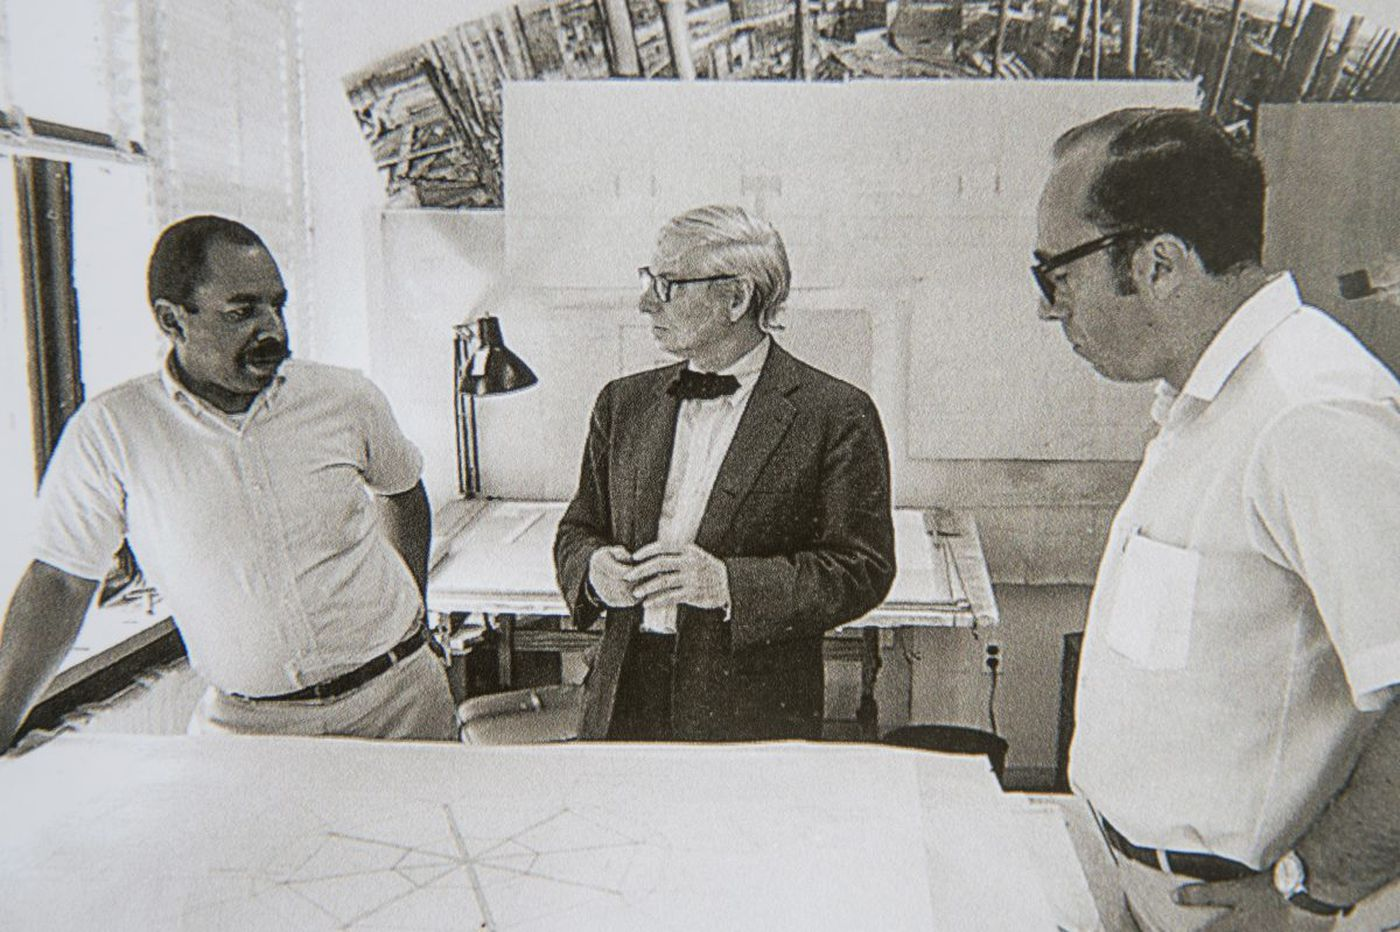 The overlooked African American architect who completed Louis Kahn's masterpiece